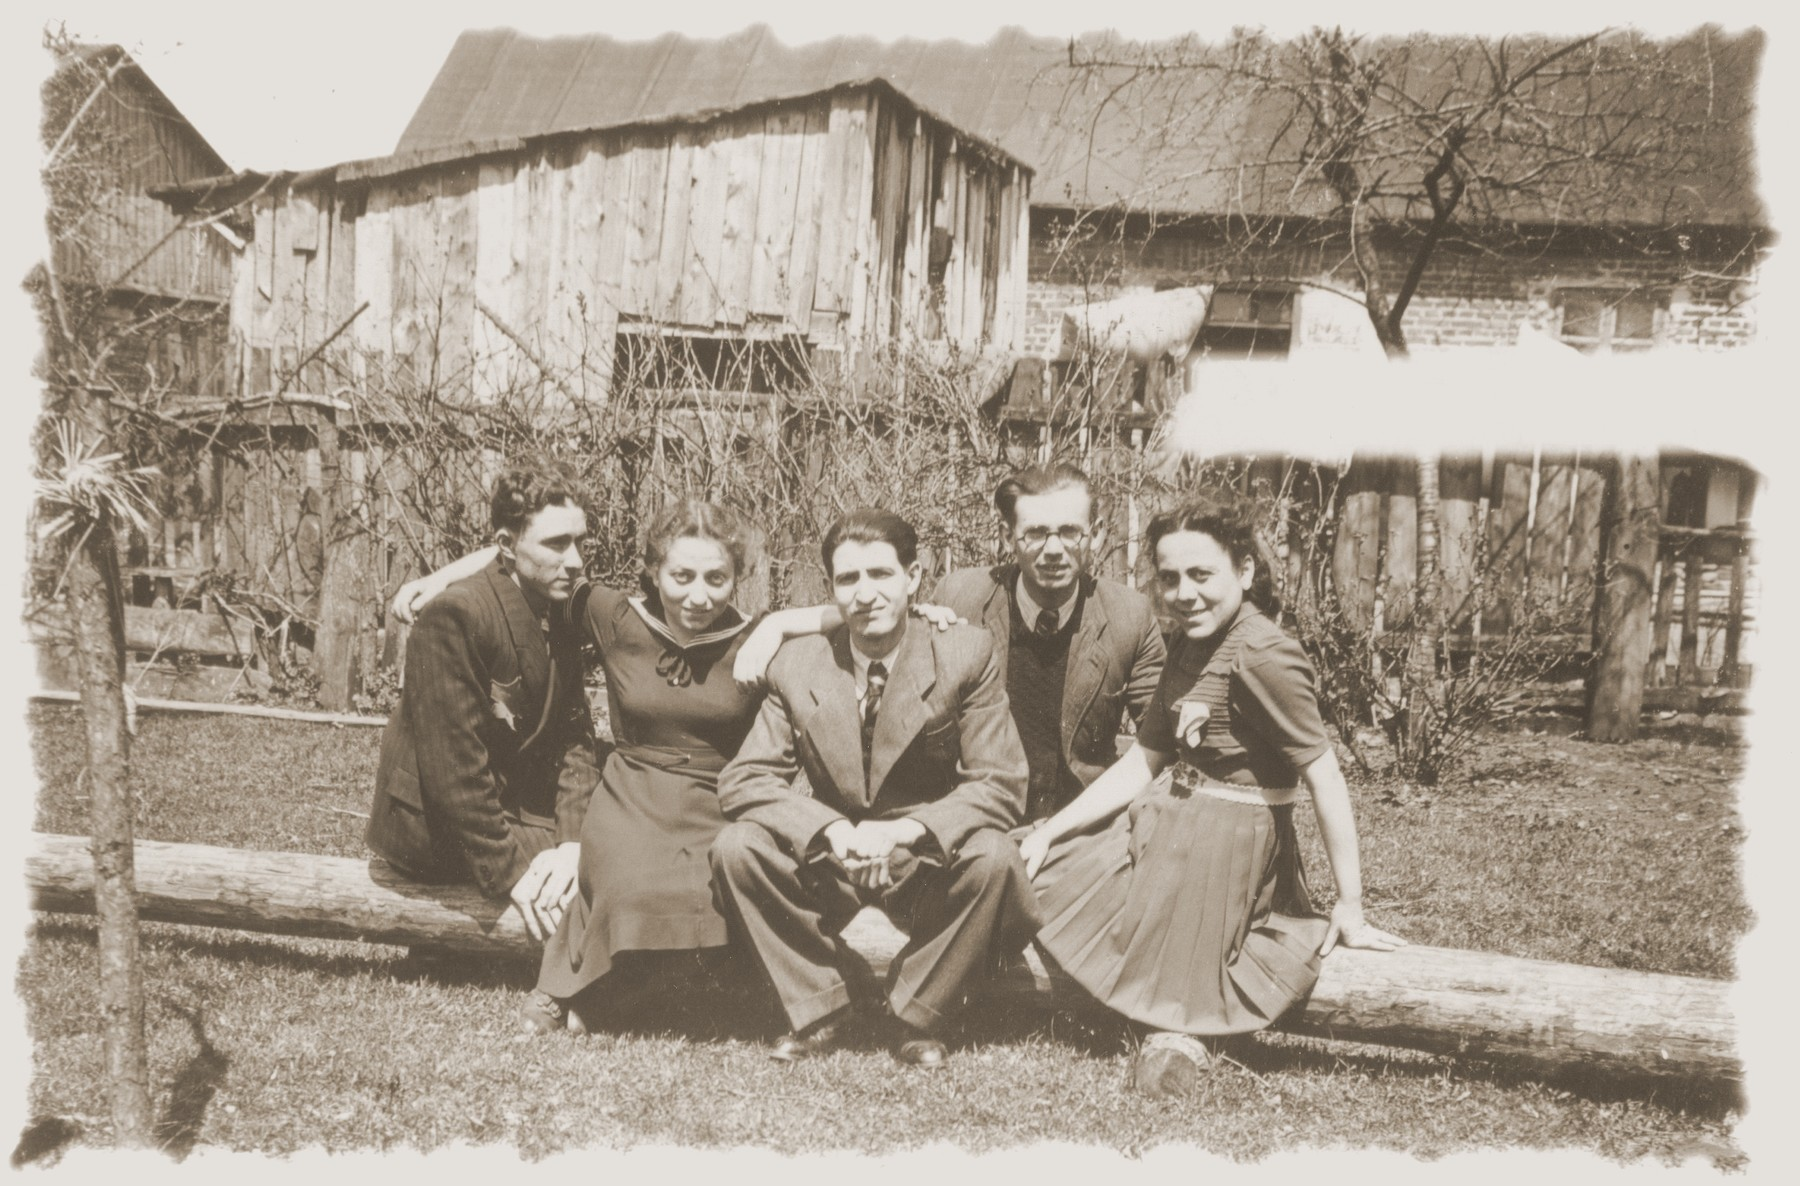 Group portrait of young Jewish men and women seated on a log in the Zelow ghetto.    Among those pictured is Moryc Brajtbart (center).